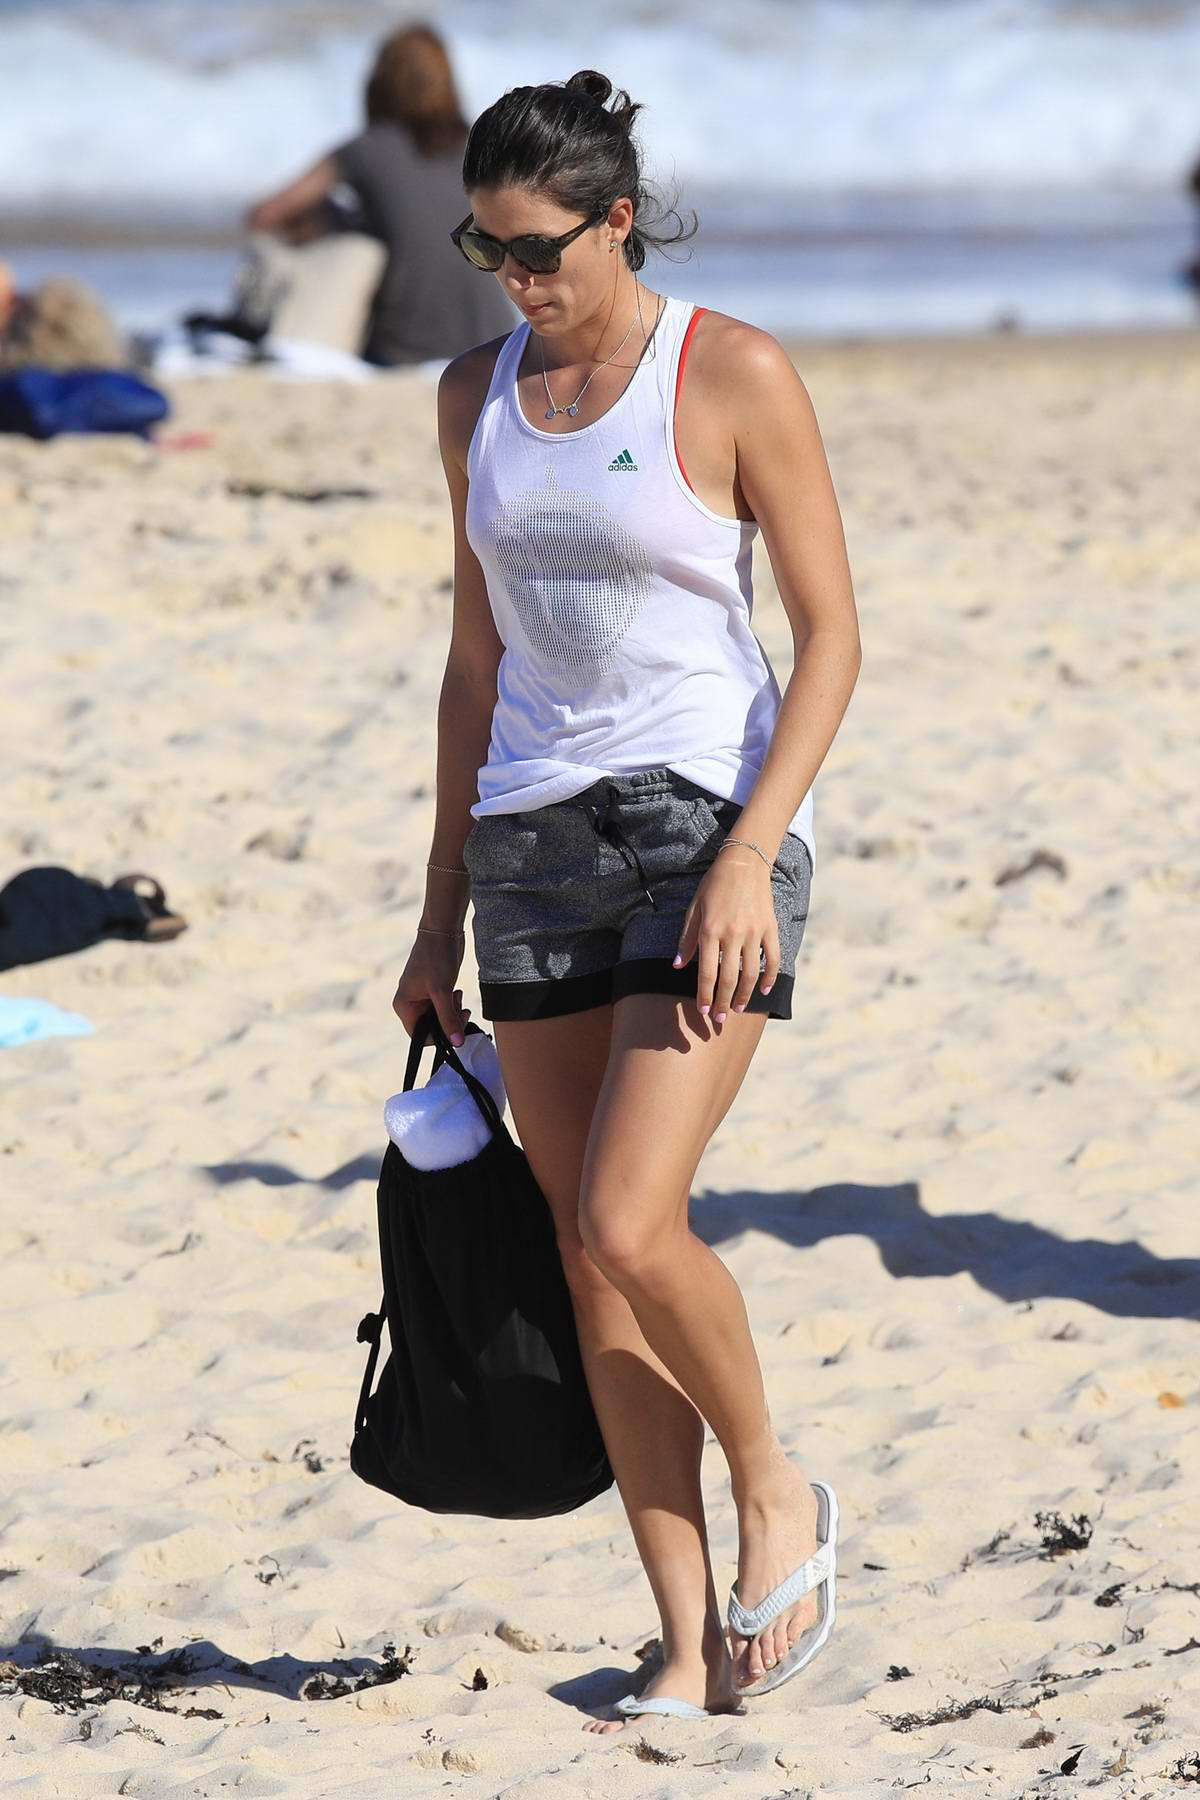 Garbine Muguruza spotted at the Bondi beach with her coach in Sydney, Australia